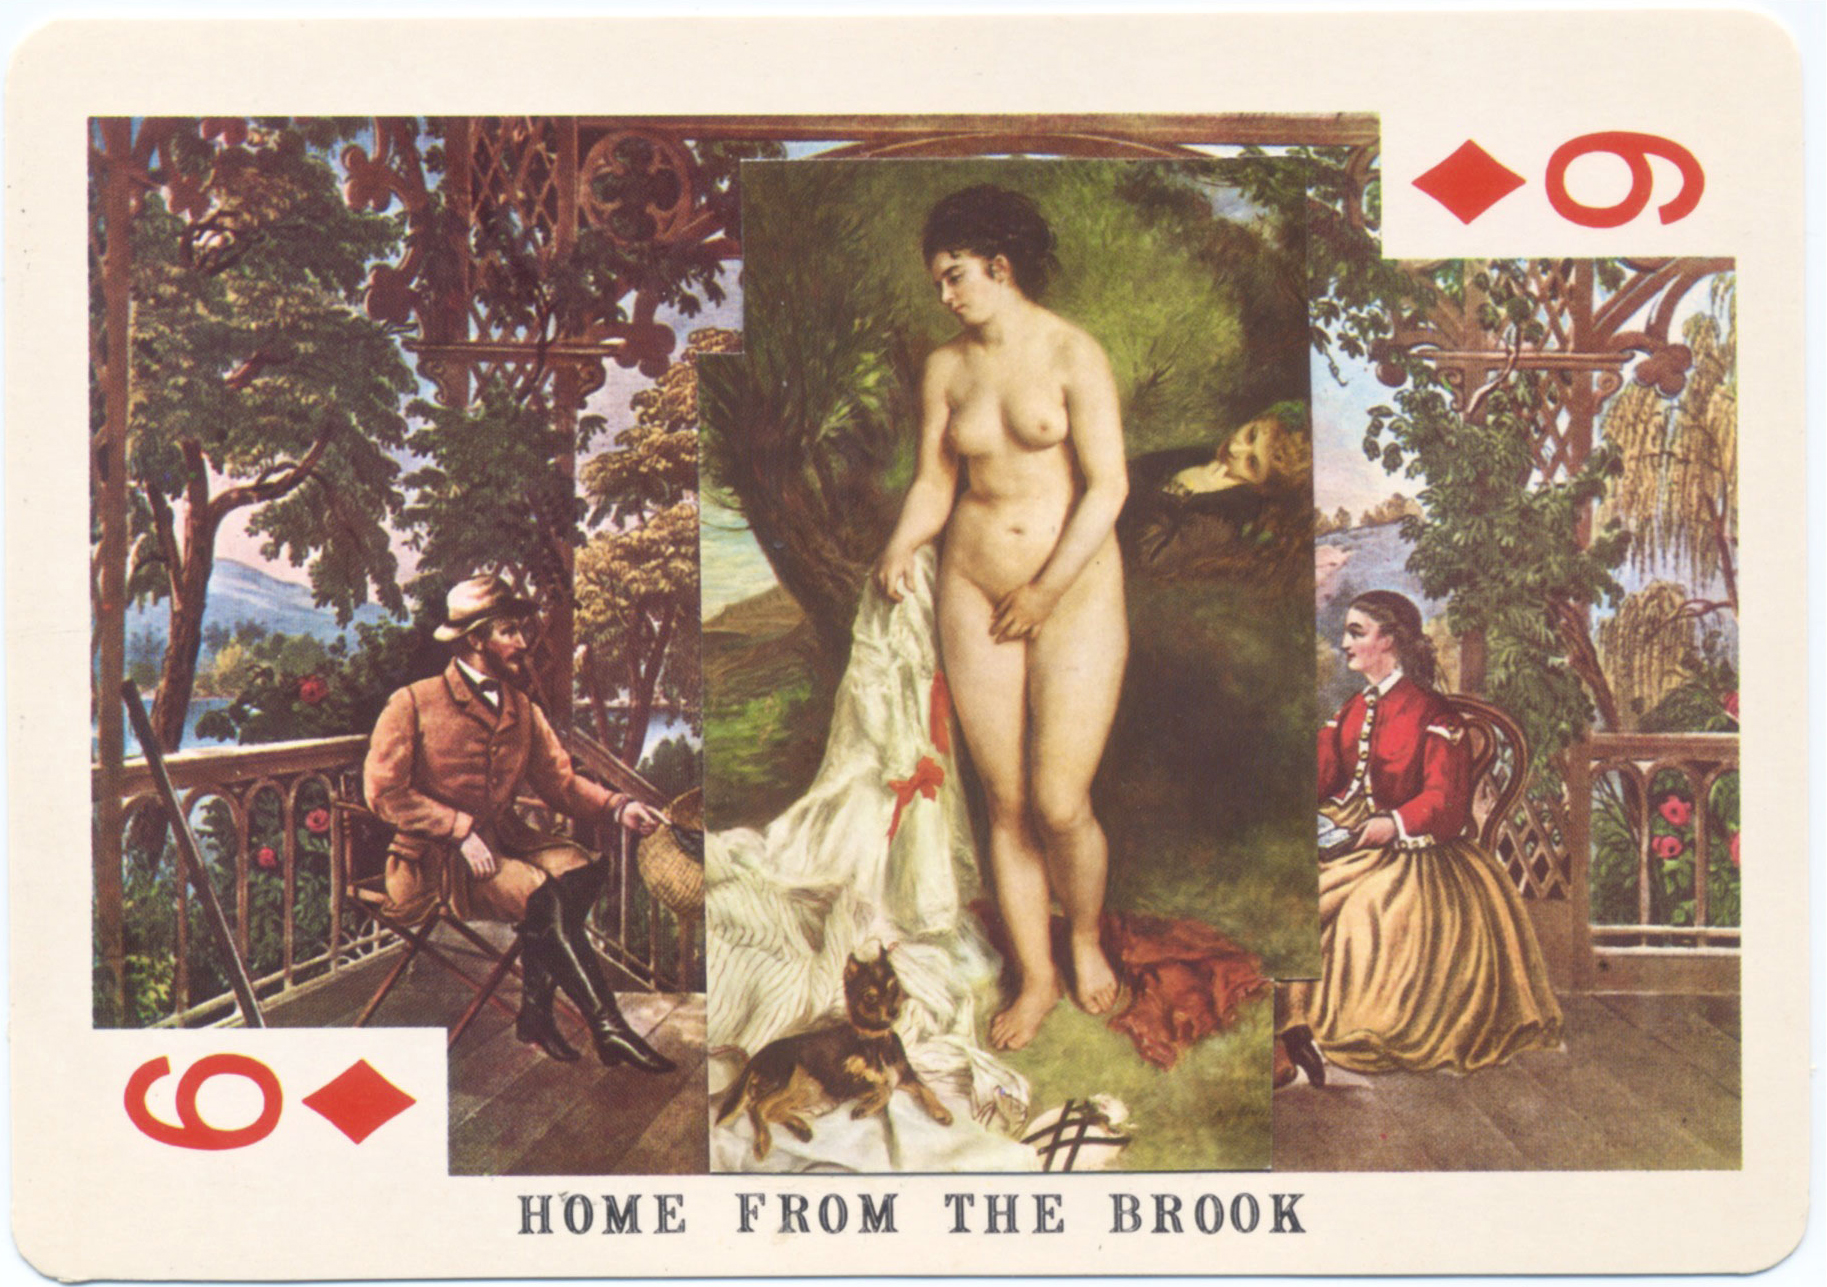 home_from_the_brook_cleaver